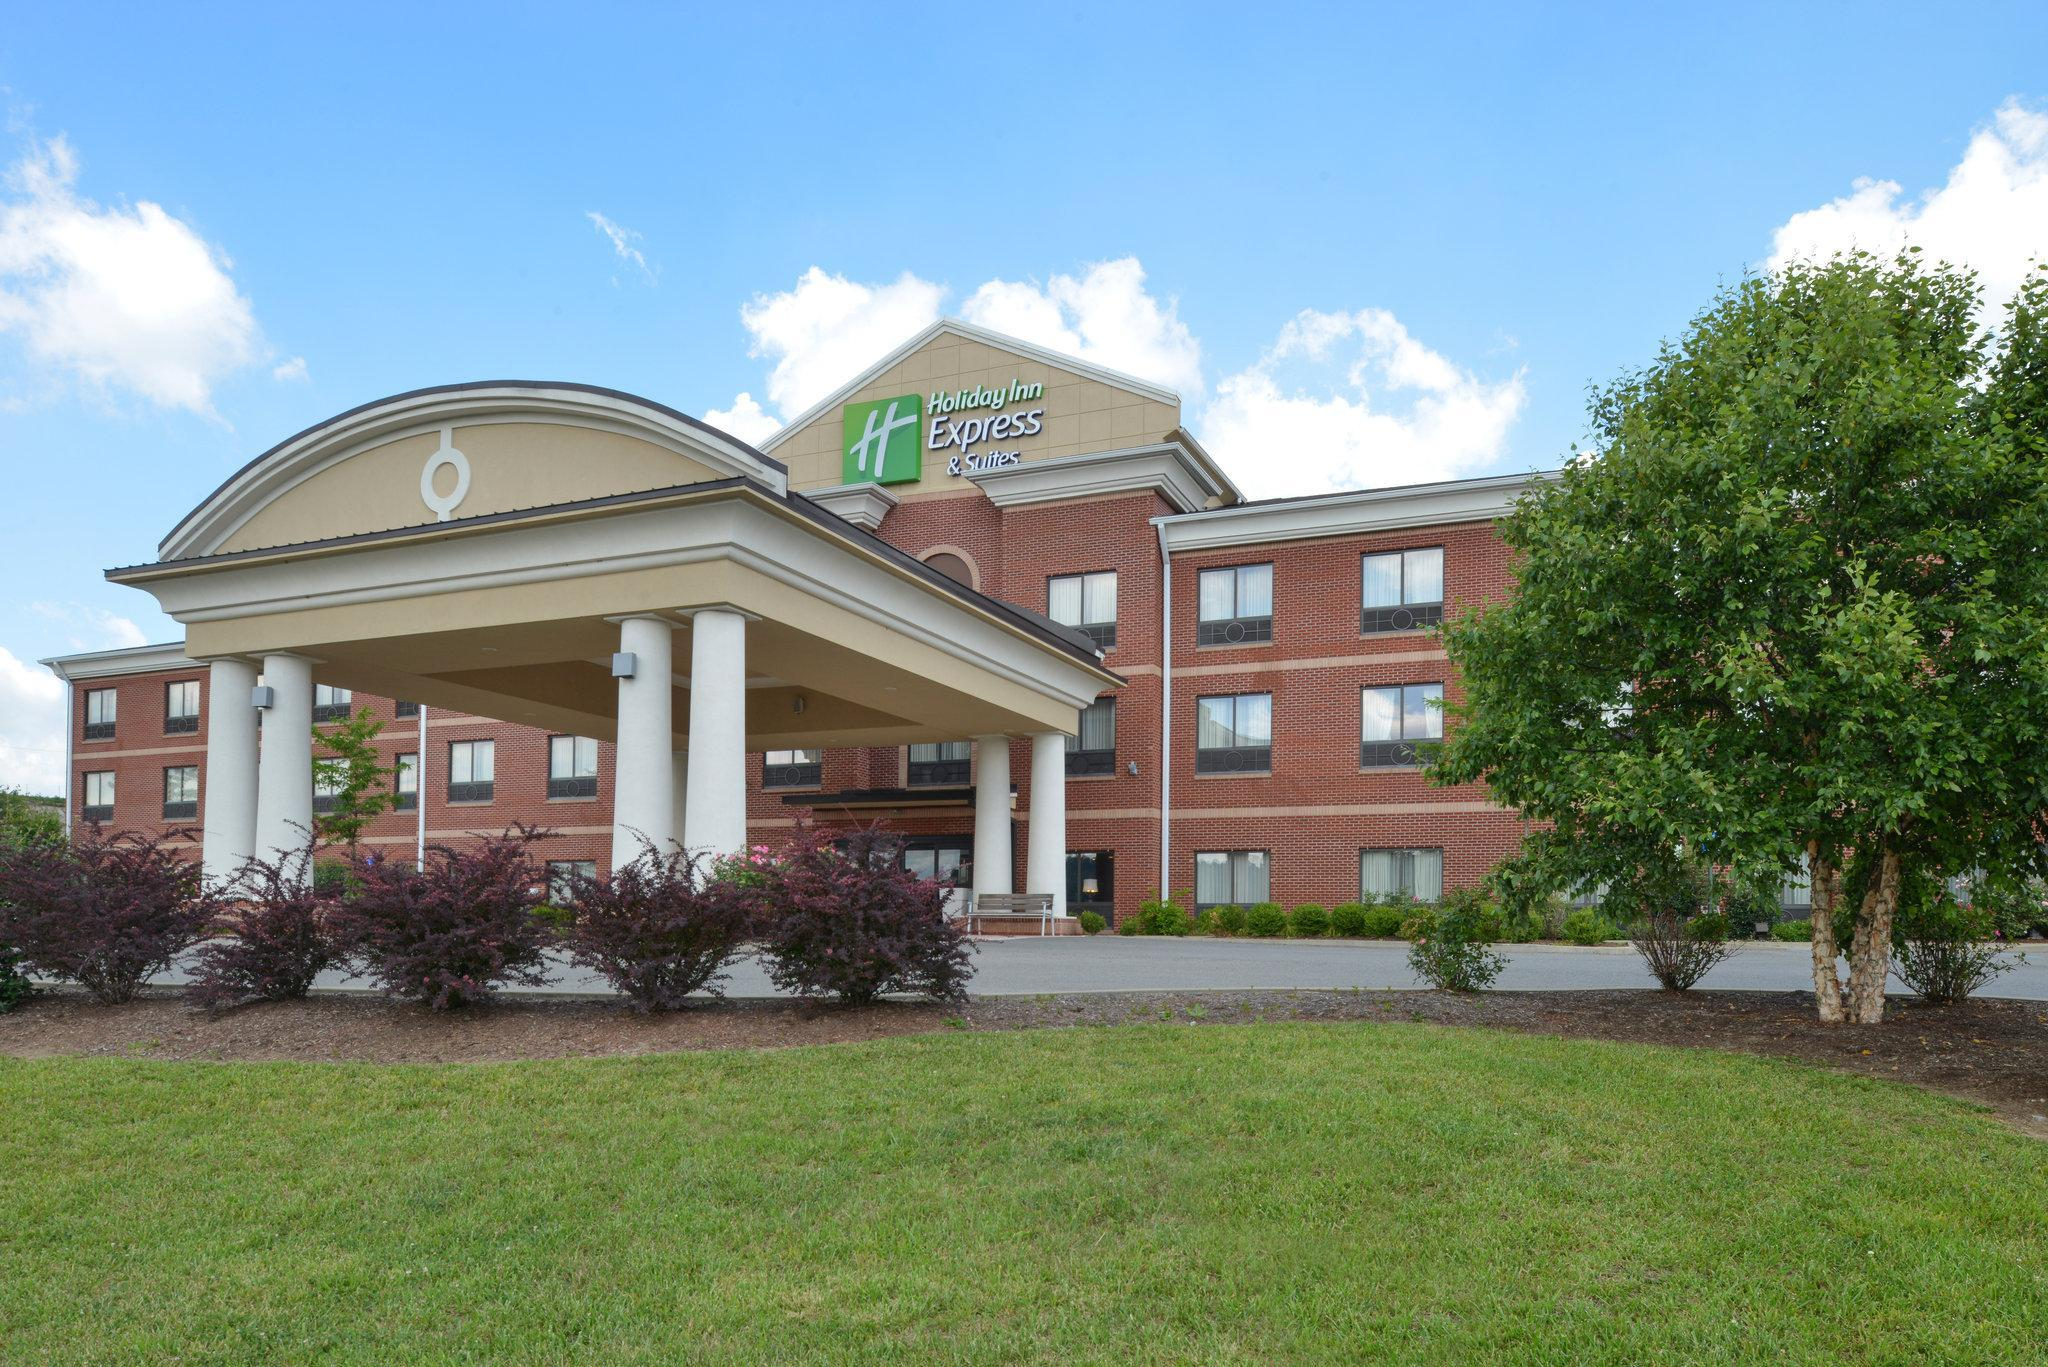 Holiday Inn Express And Suites Bridgeport